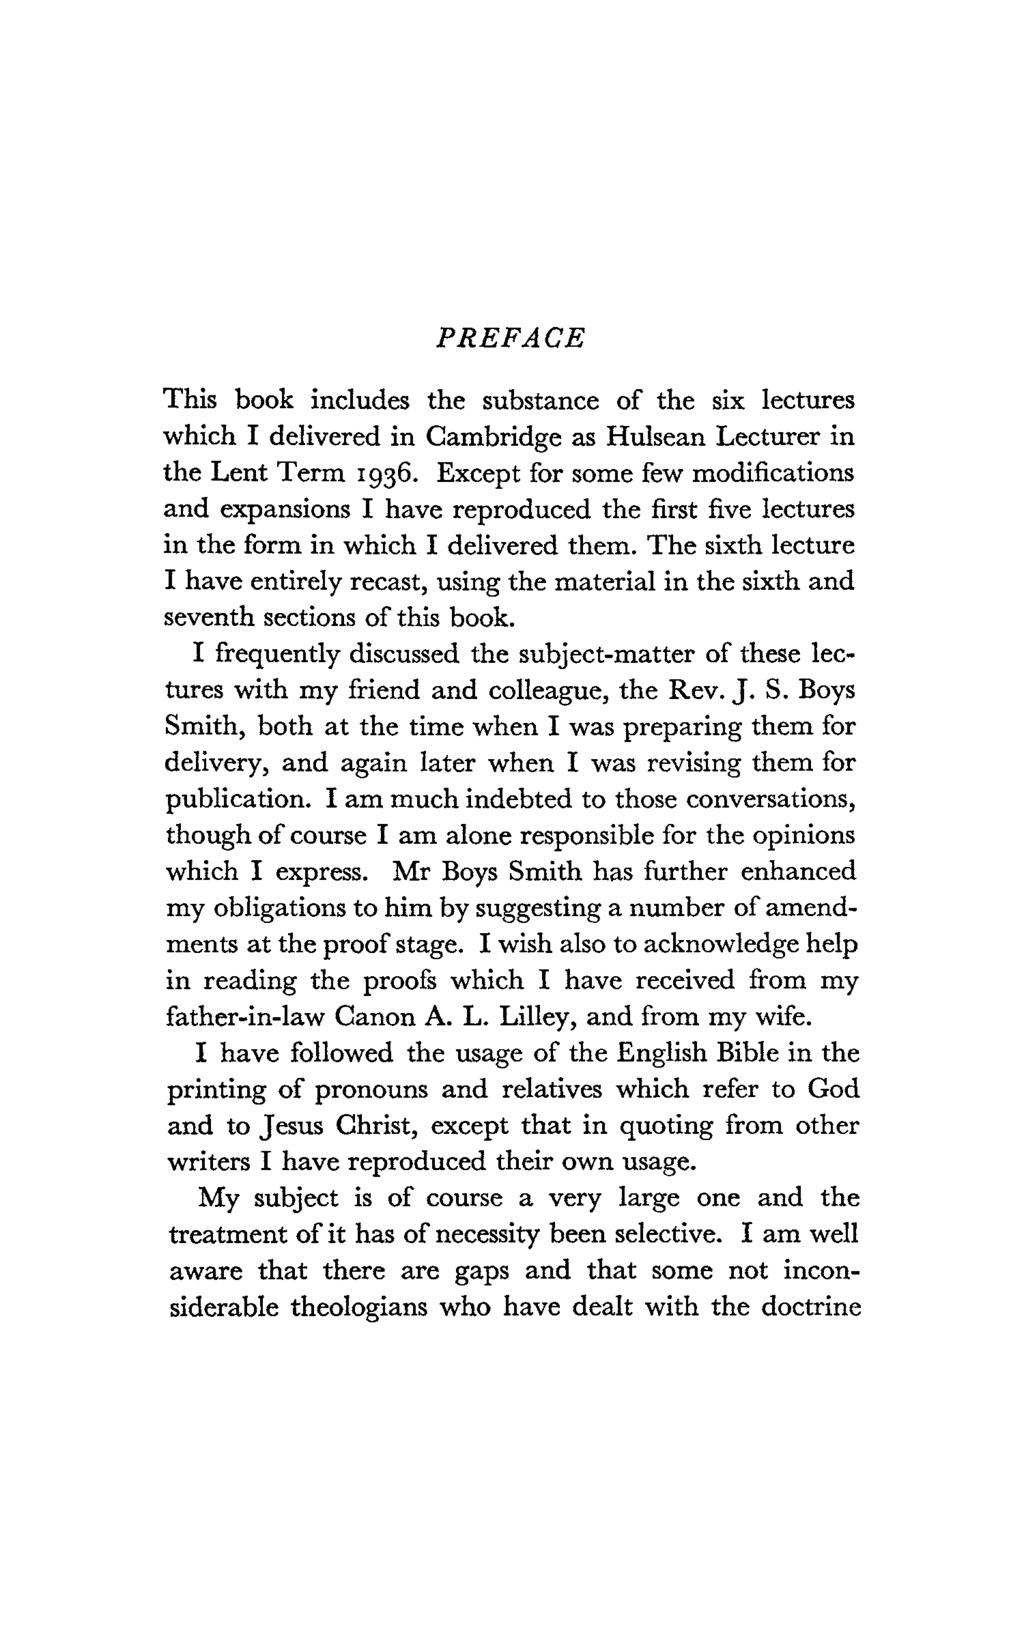 PREFACE This book includes the substance of the six lectures which I delivered in Cambridge as Hulsean Lecturer in the Lent Term 1936.